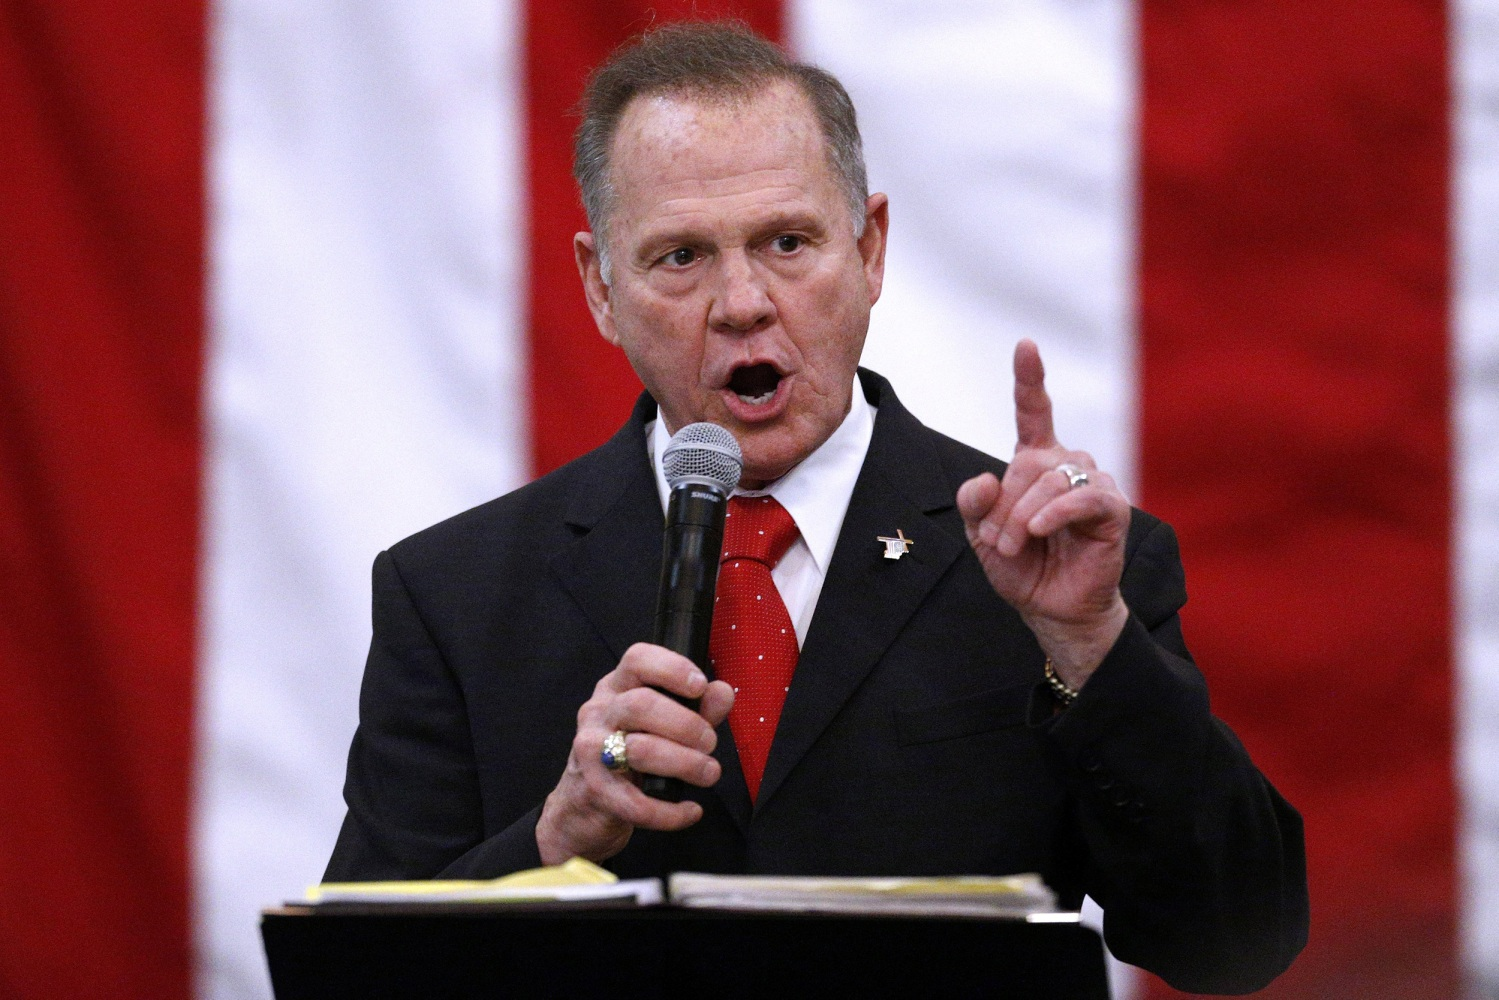 Roy Moore alleges voter fraud, files challenge to election defeat